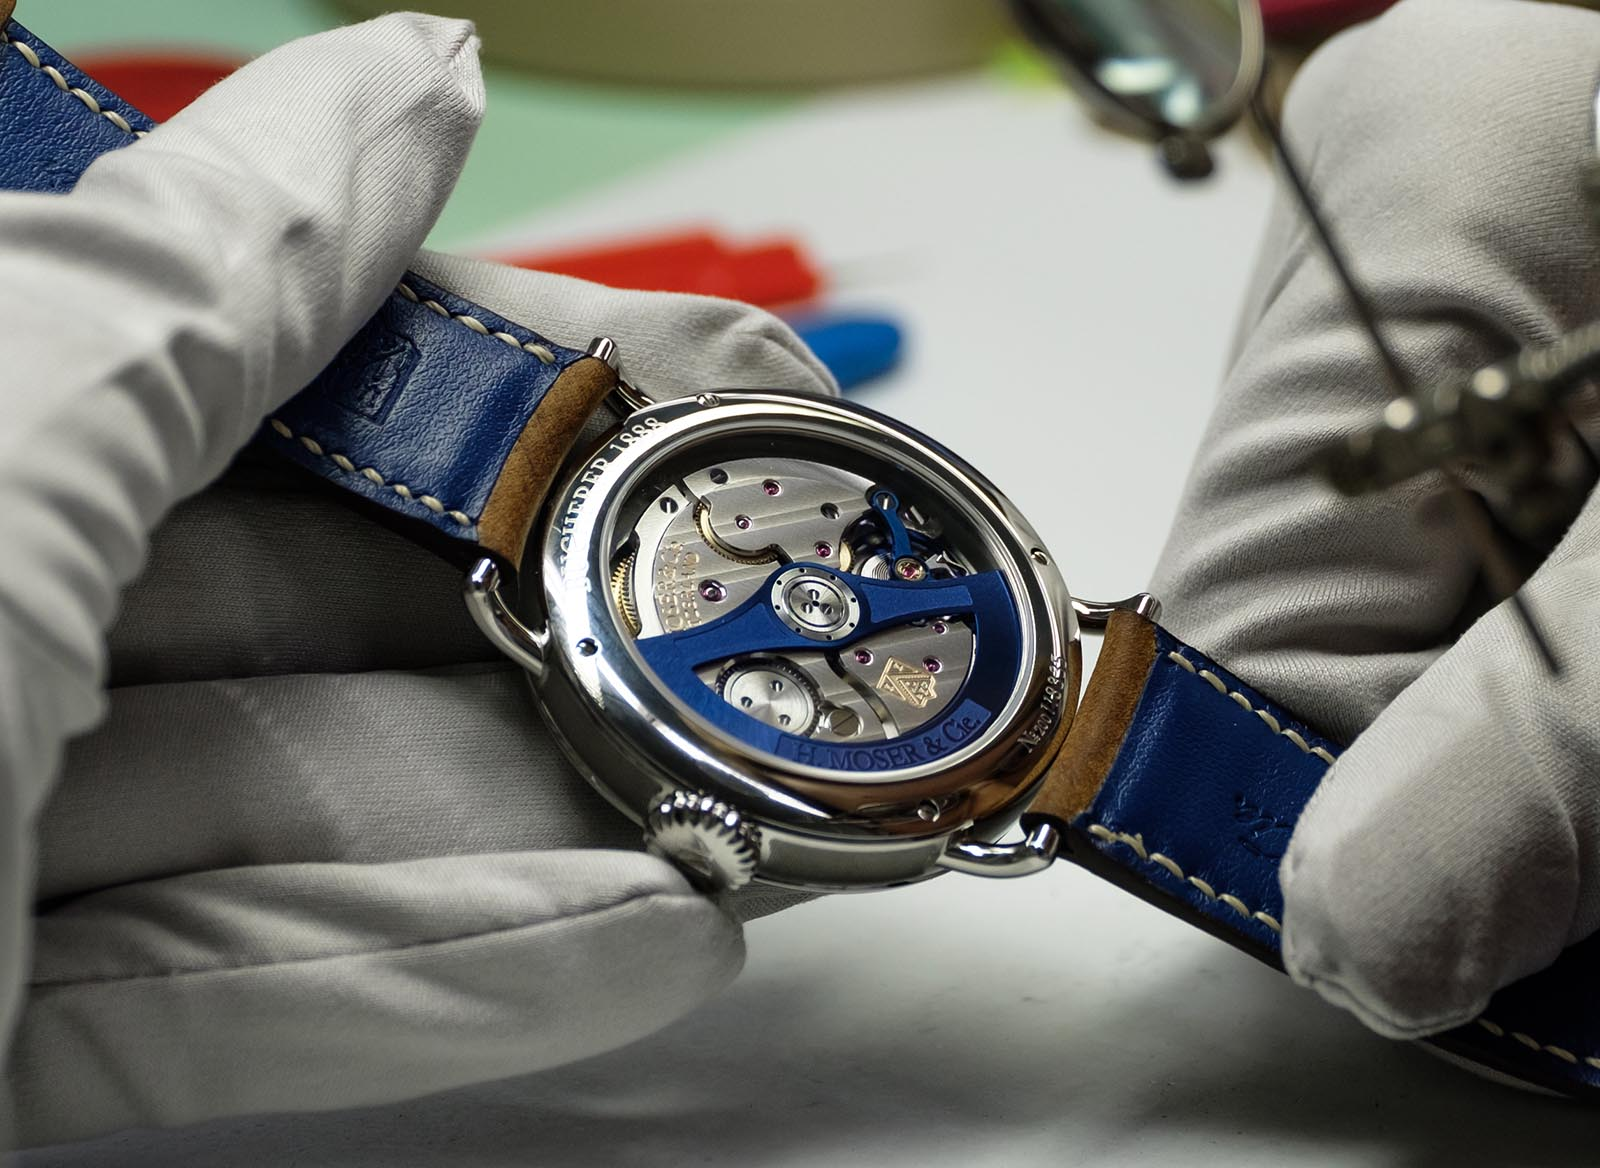 H. Moser & Cie. Heritage Bucherer Blue Edition 3